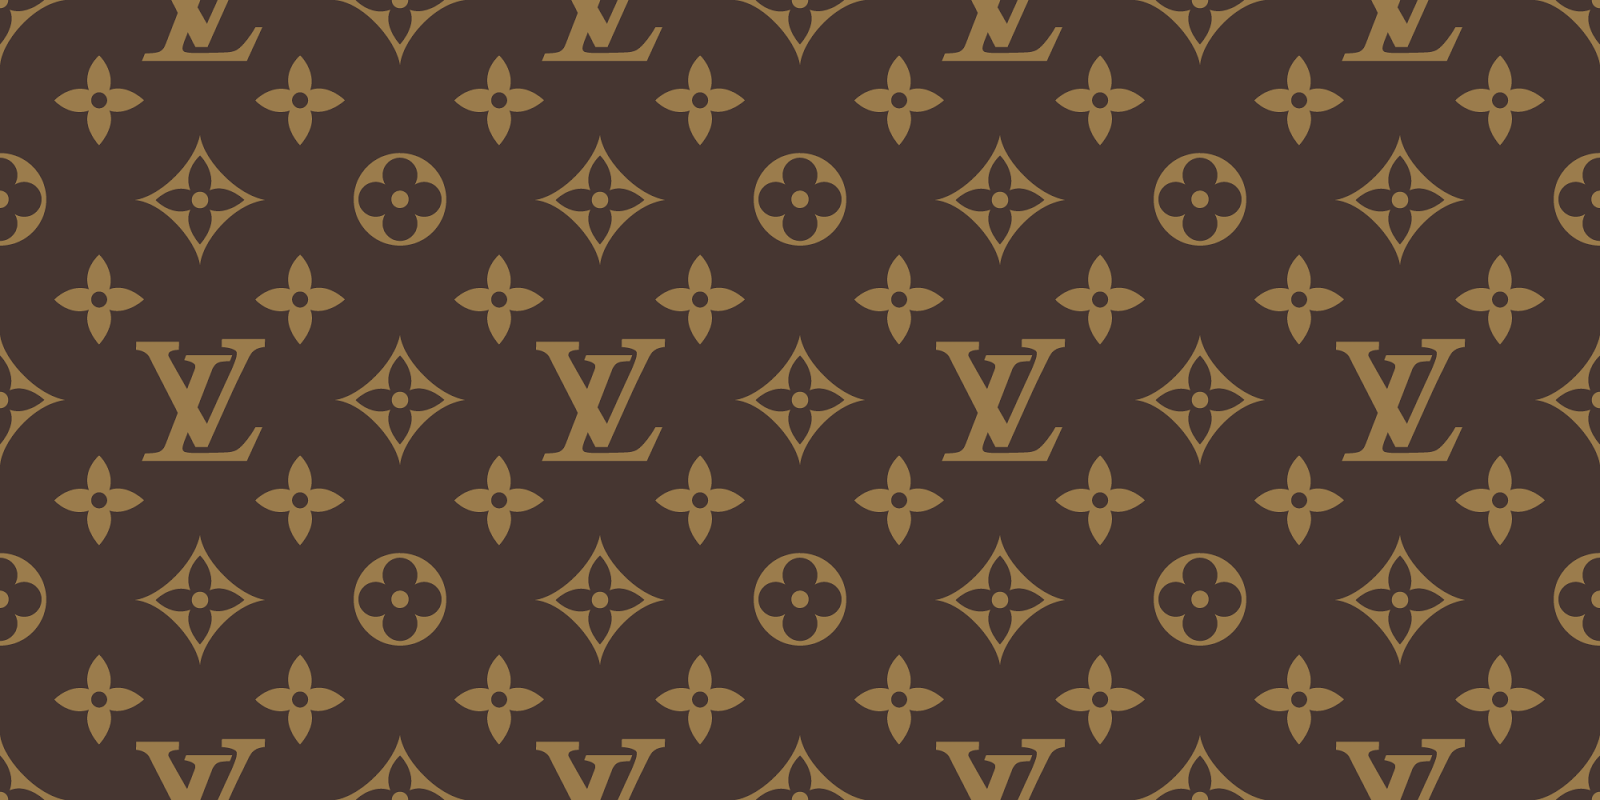 Must see Wallpaper Macbook Louis Vuitton - f85c5240a7acb37c78531f5934f7ba16  Image_944647.png